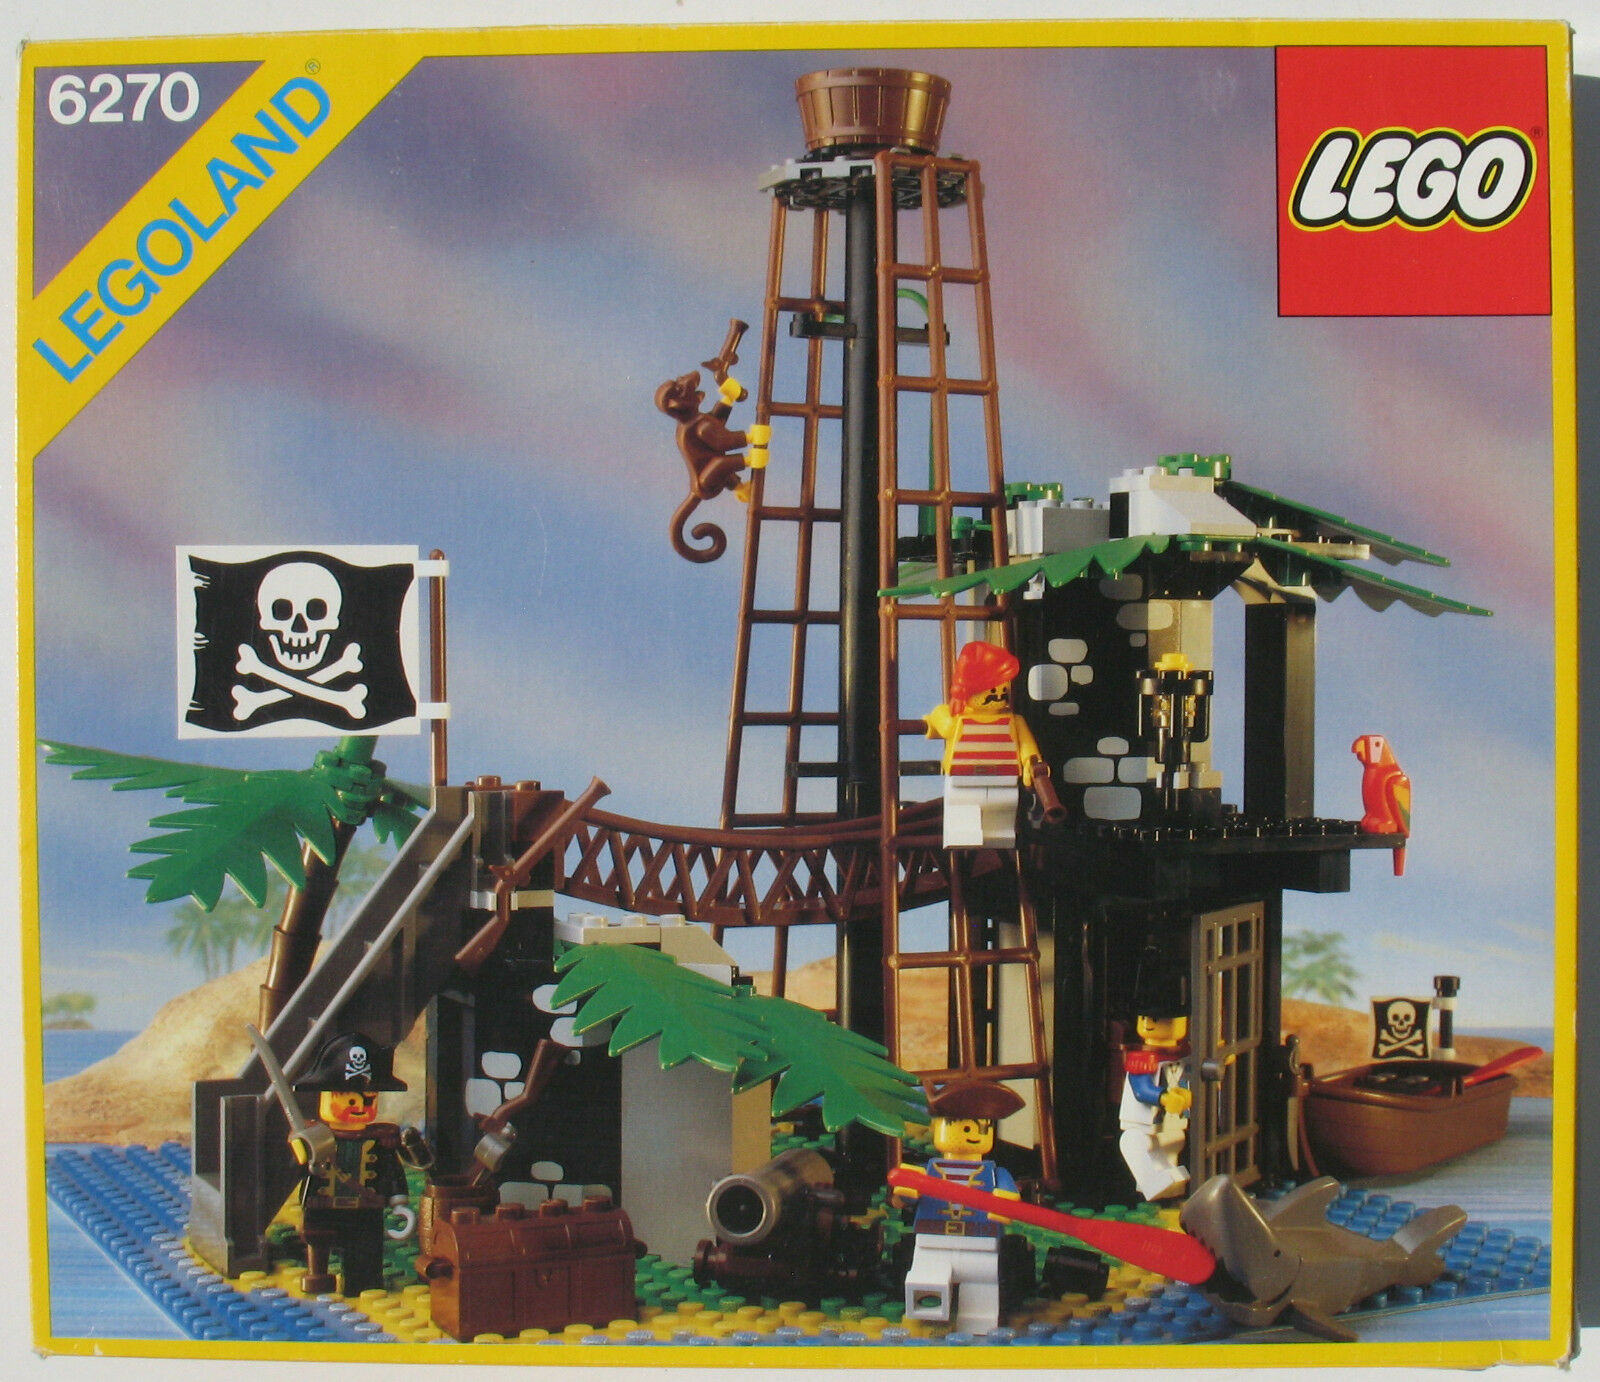 LEGO 6270 -  Pirateninsel - Forbidden Island - Piraten - in OVP   Box - 1989